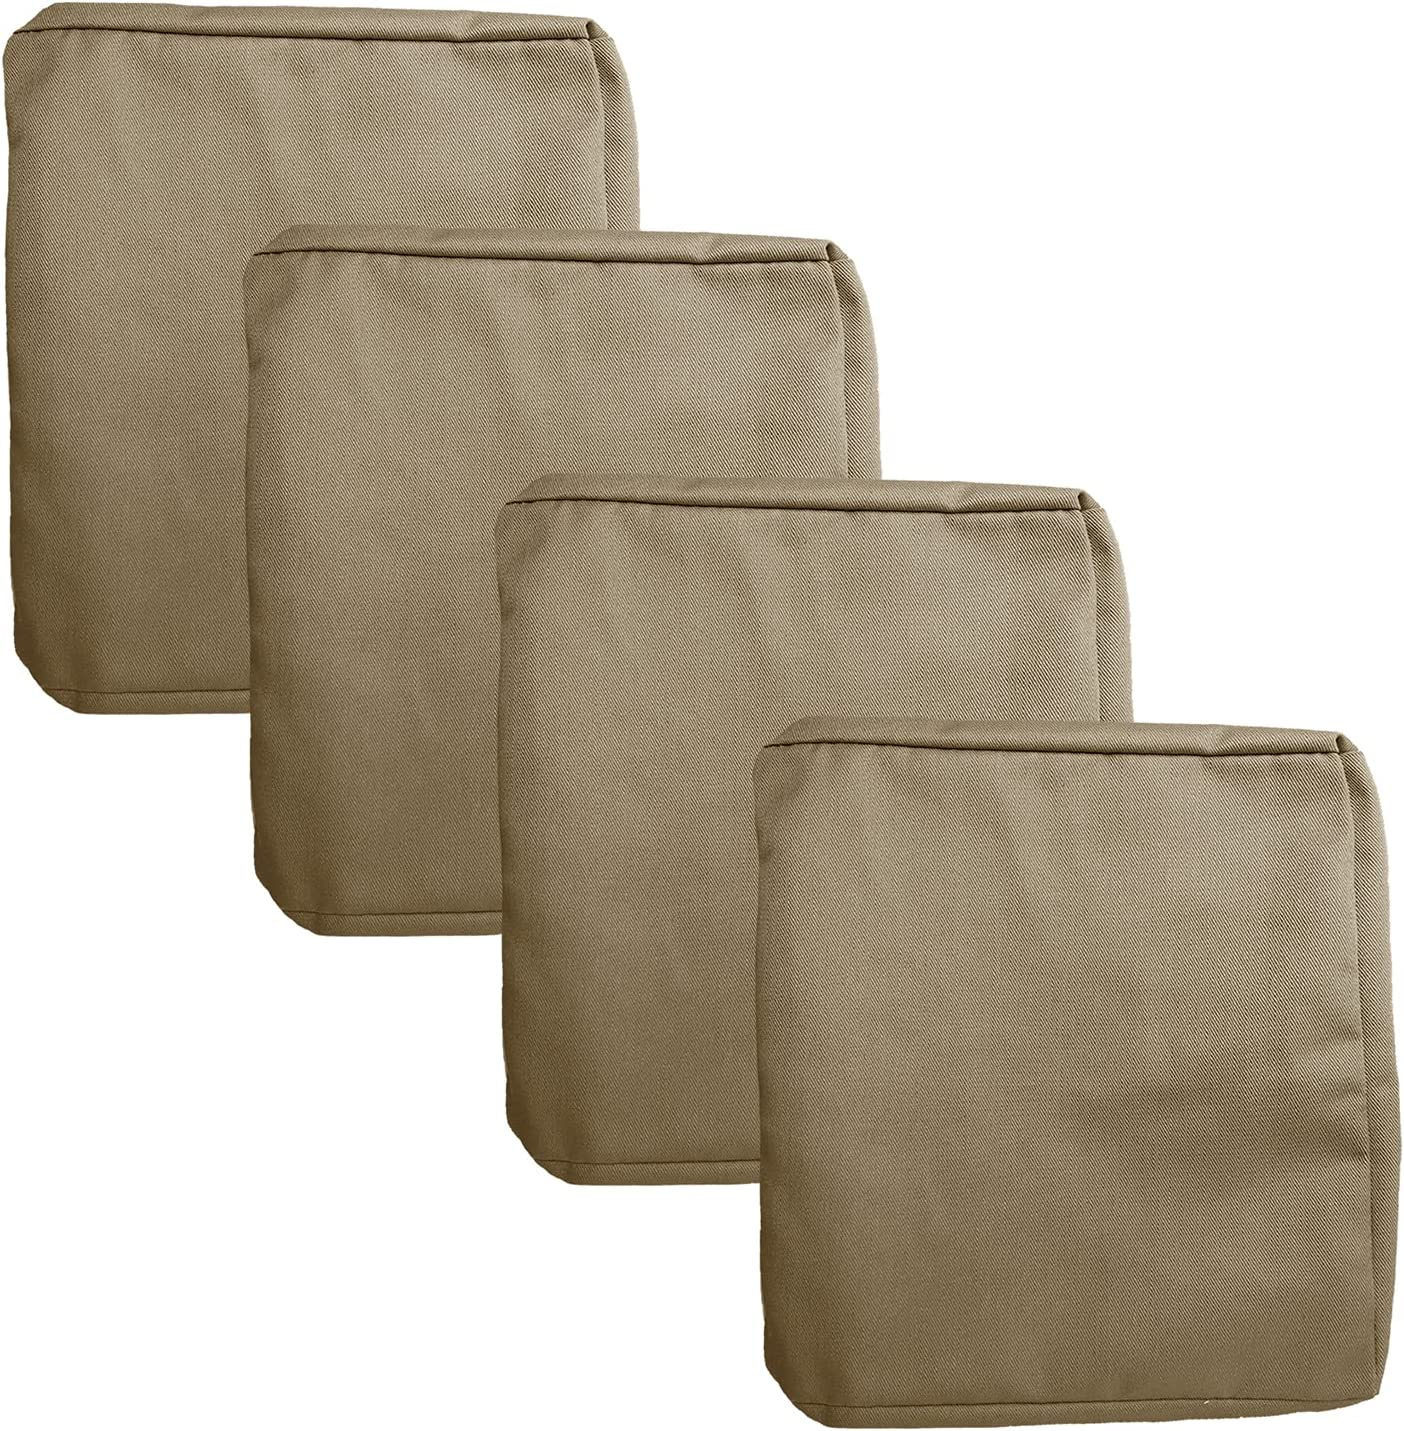 FLYMEI Patio Cushion Covers 20X18, Outdoor Cushion Replacement Seat Covers, Large Chair Seat Covers 4 Pack, Taupe Seat Slip Covers